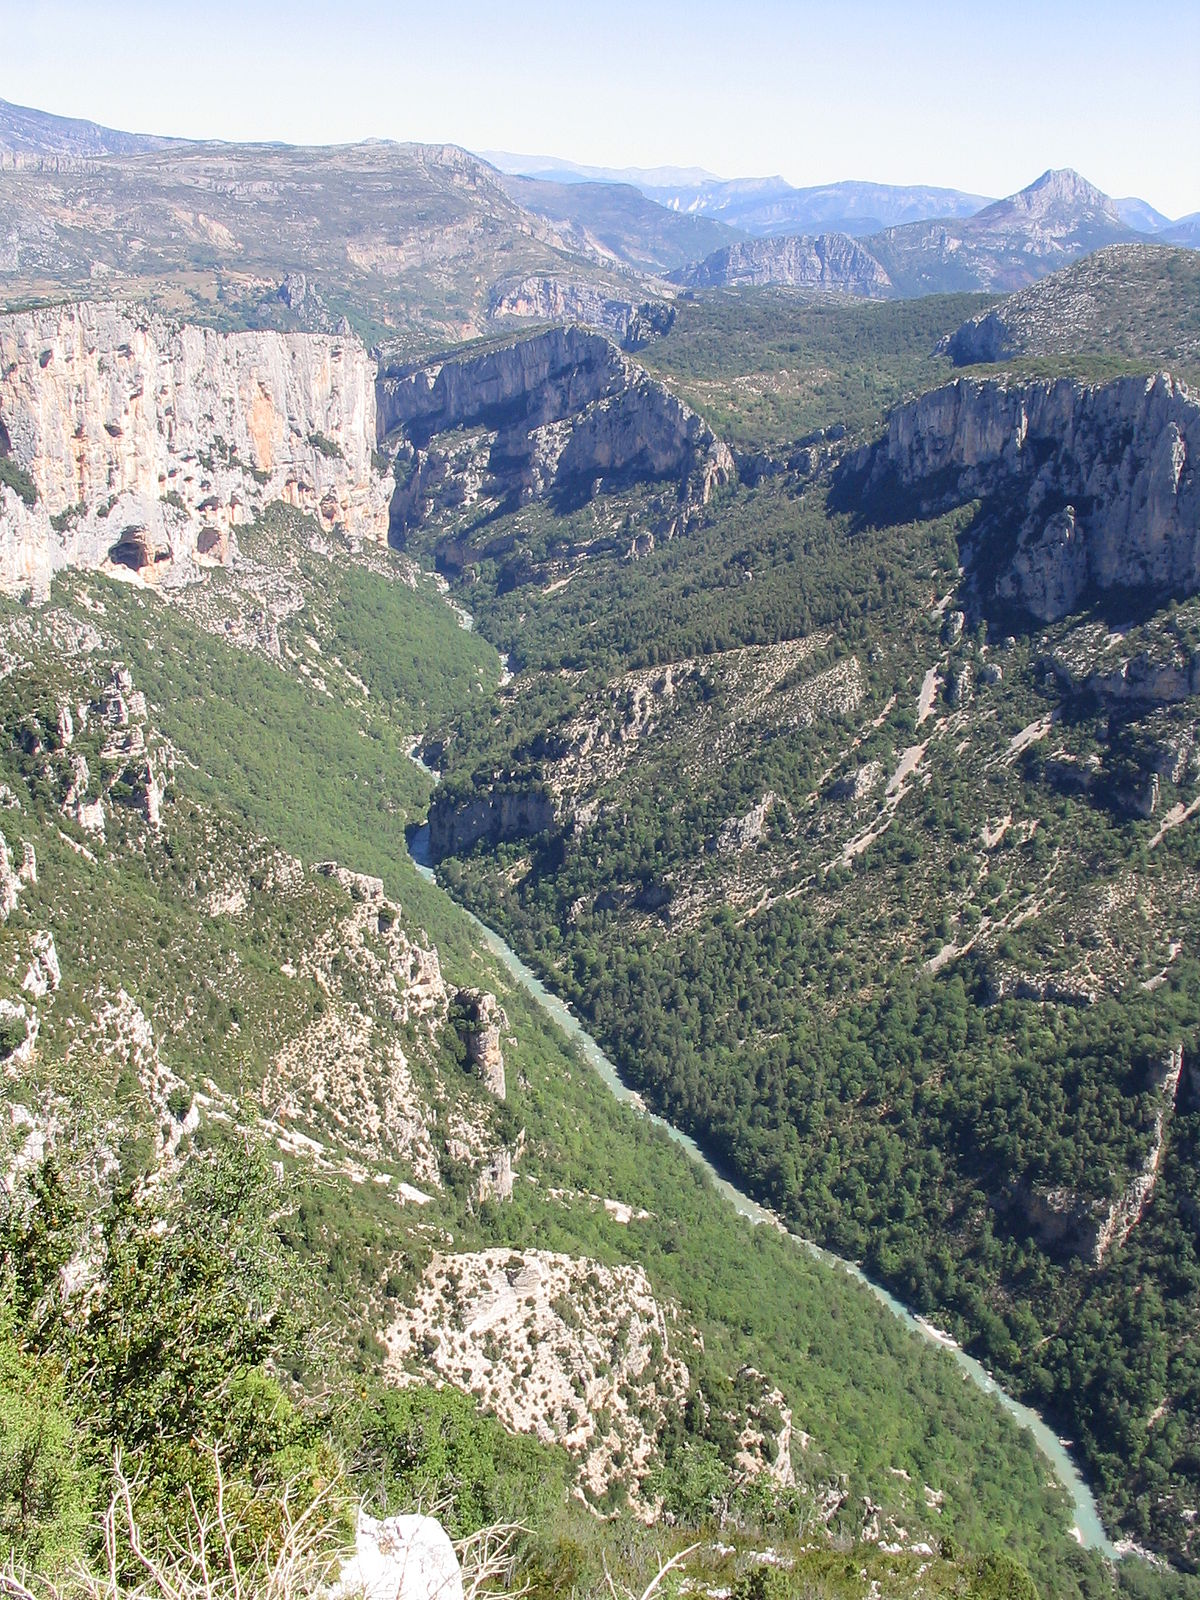 Verdon Gorge - Wikipedia